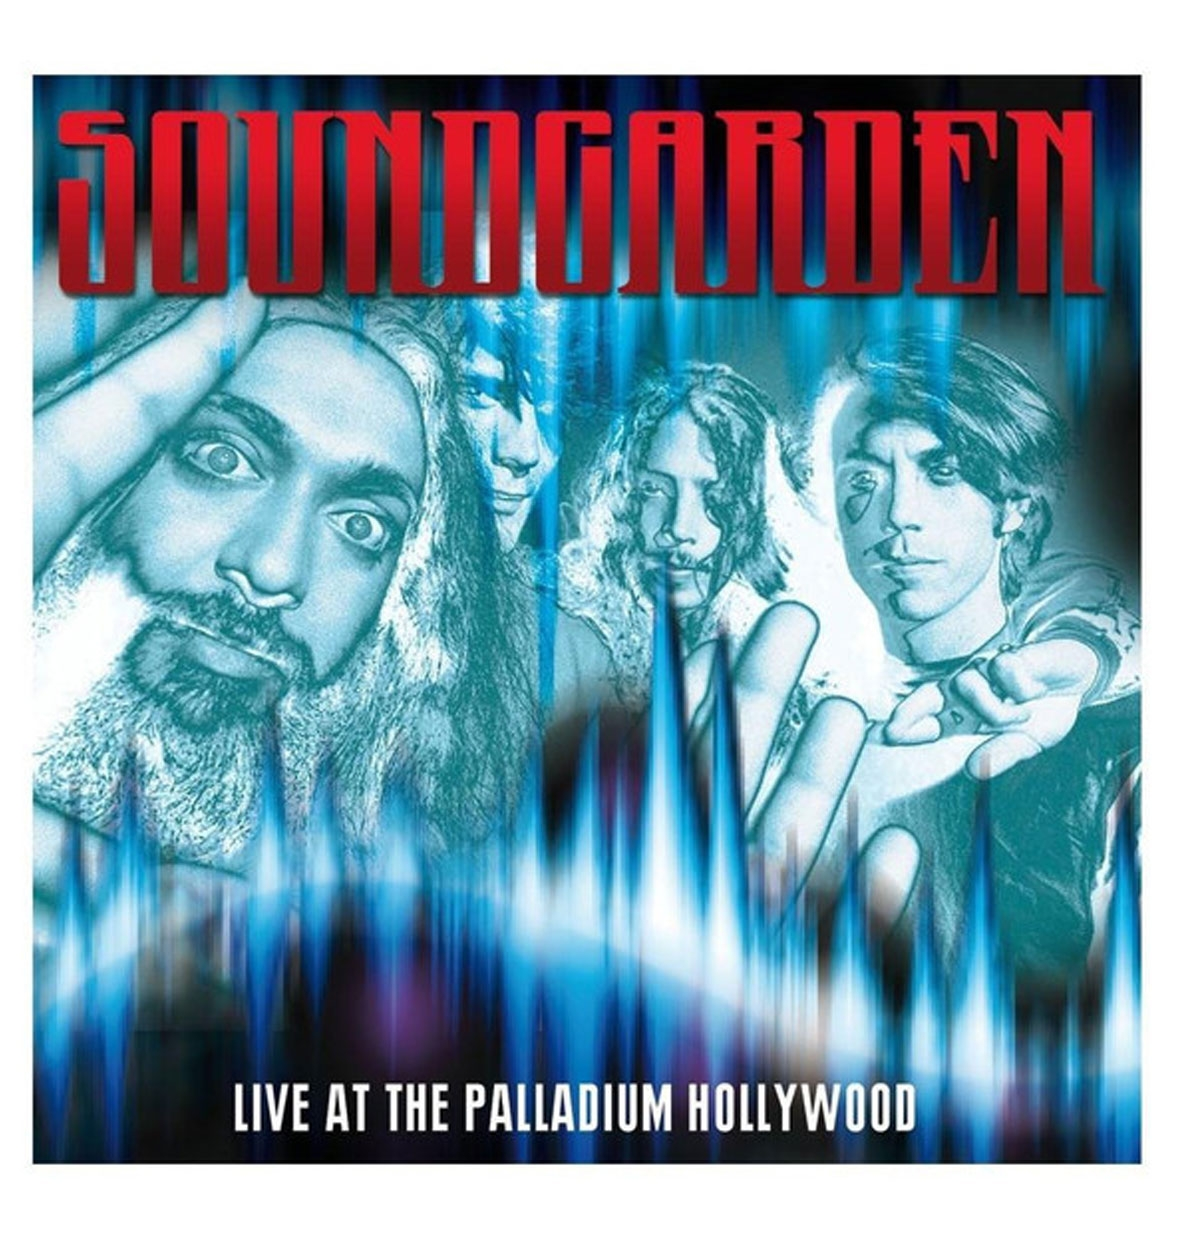 Soundgarden - Live At The Palladium Hollywood Limited Edition LP